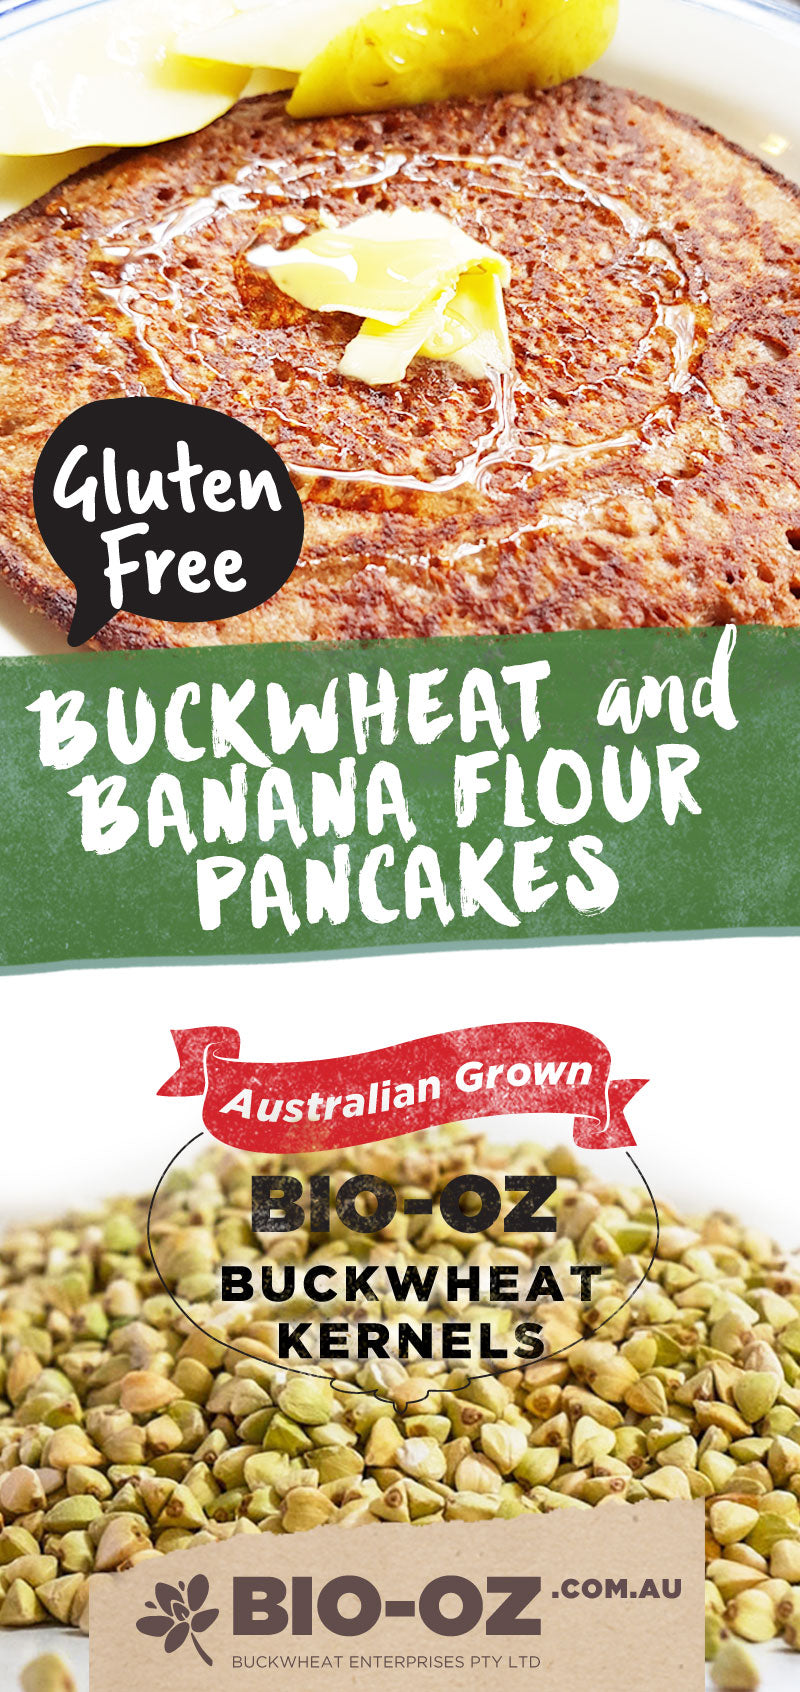 Bio-Oz Buckwheat and Banana Flour Pancakes